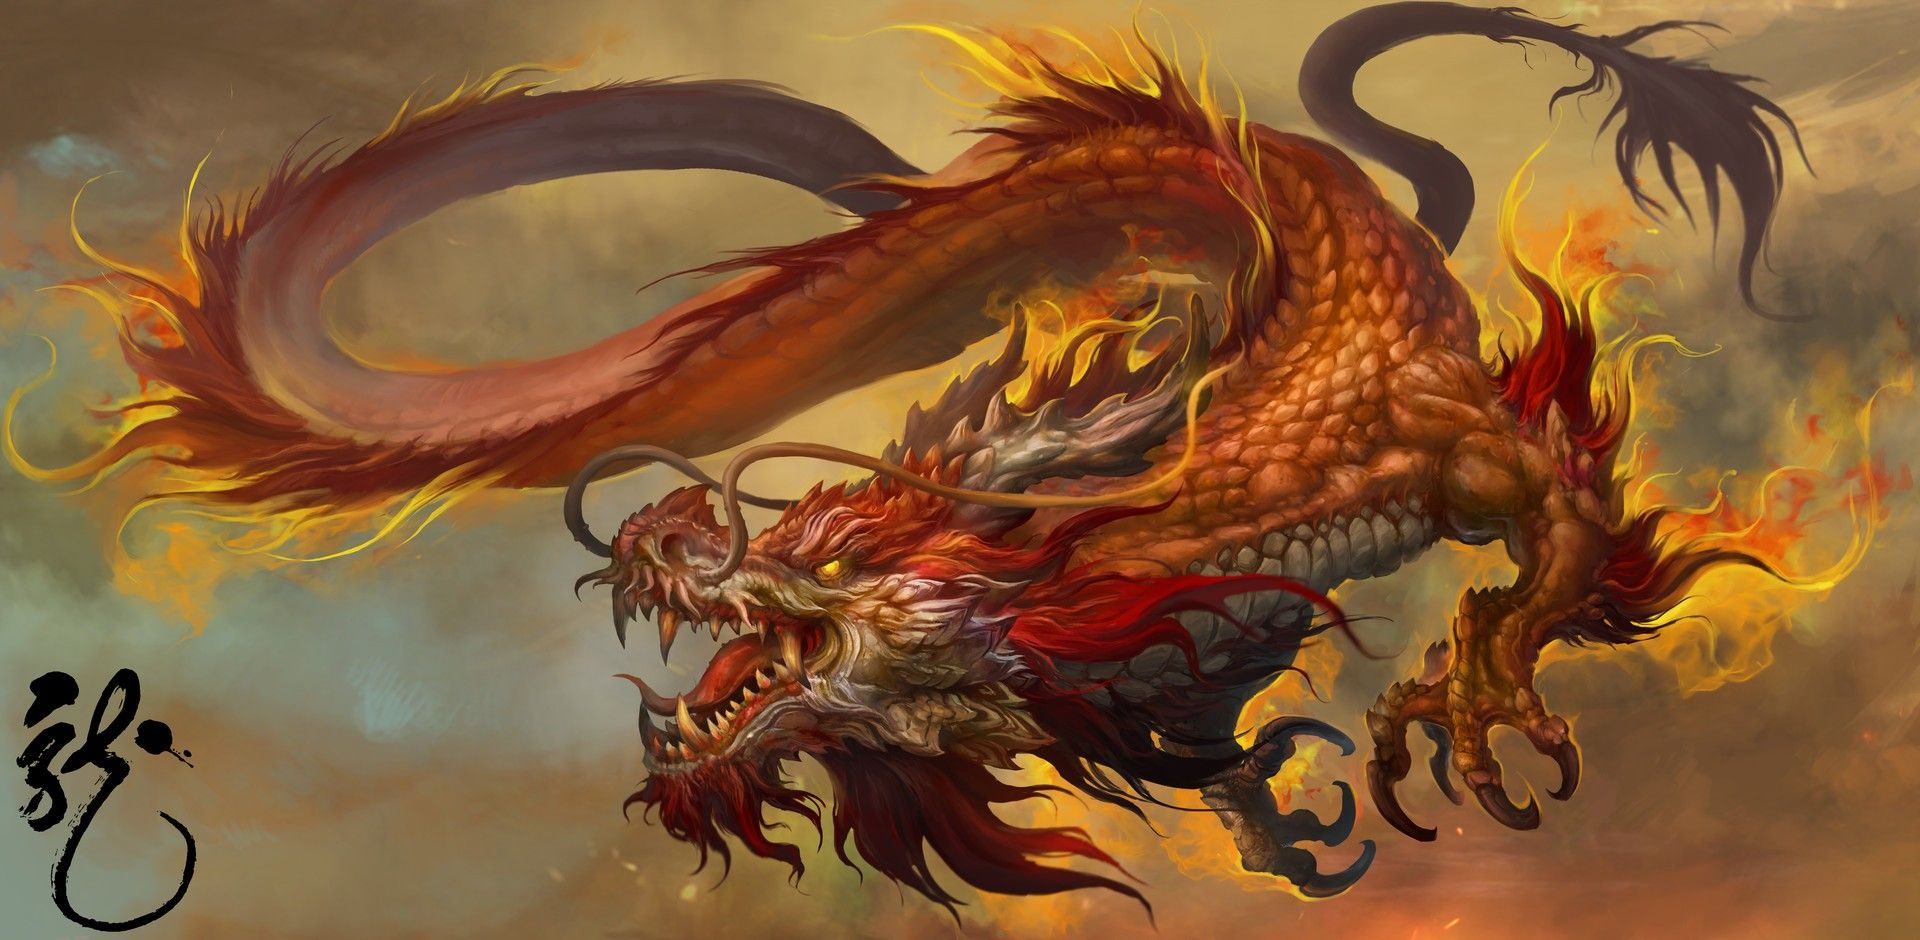 China Stock Images - Download 1,083,135 Royalty Free Photos